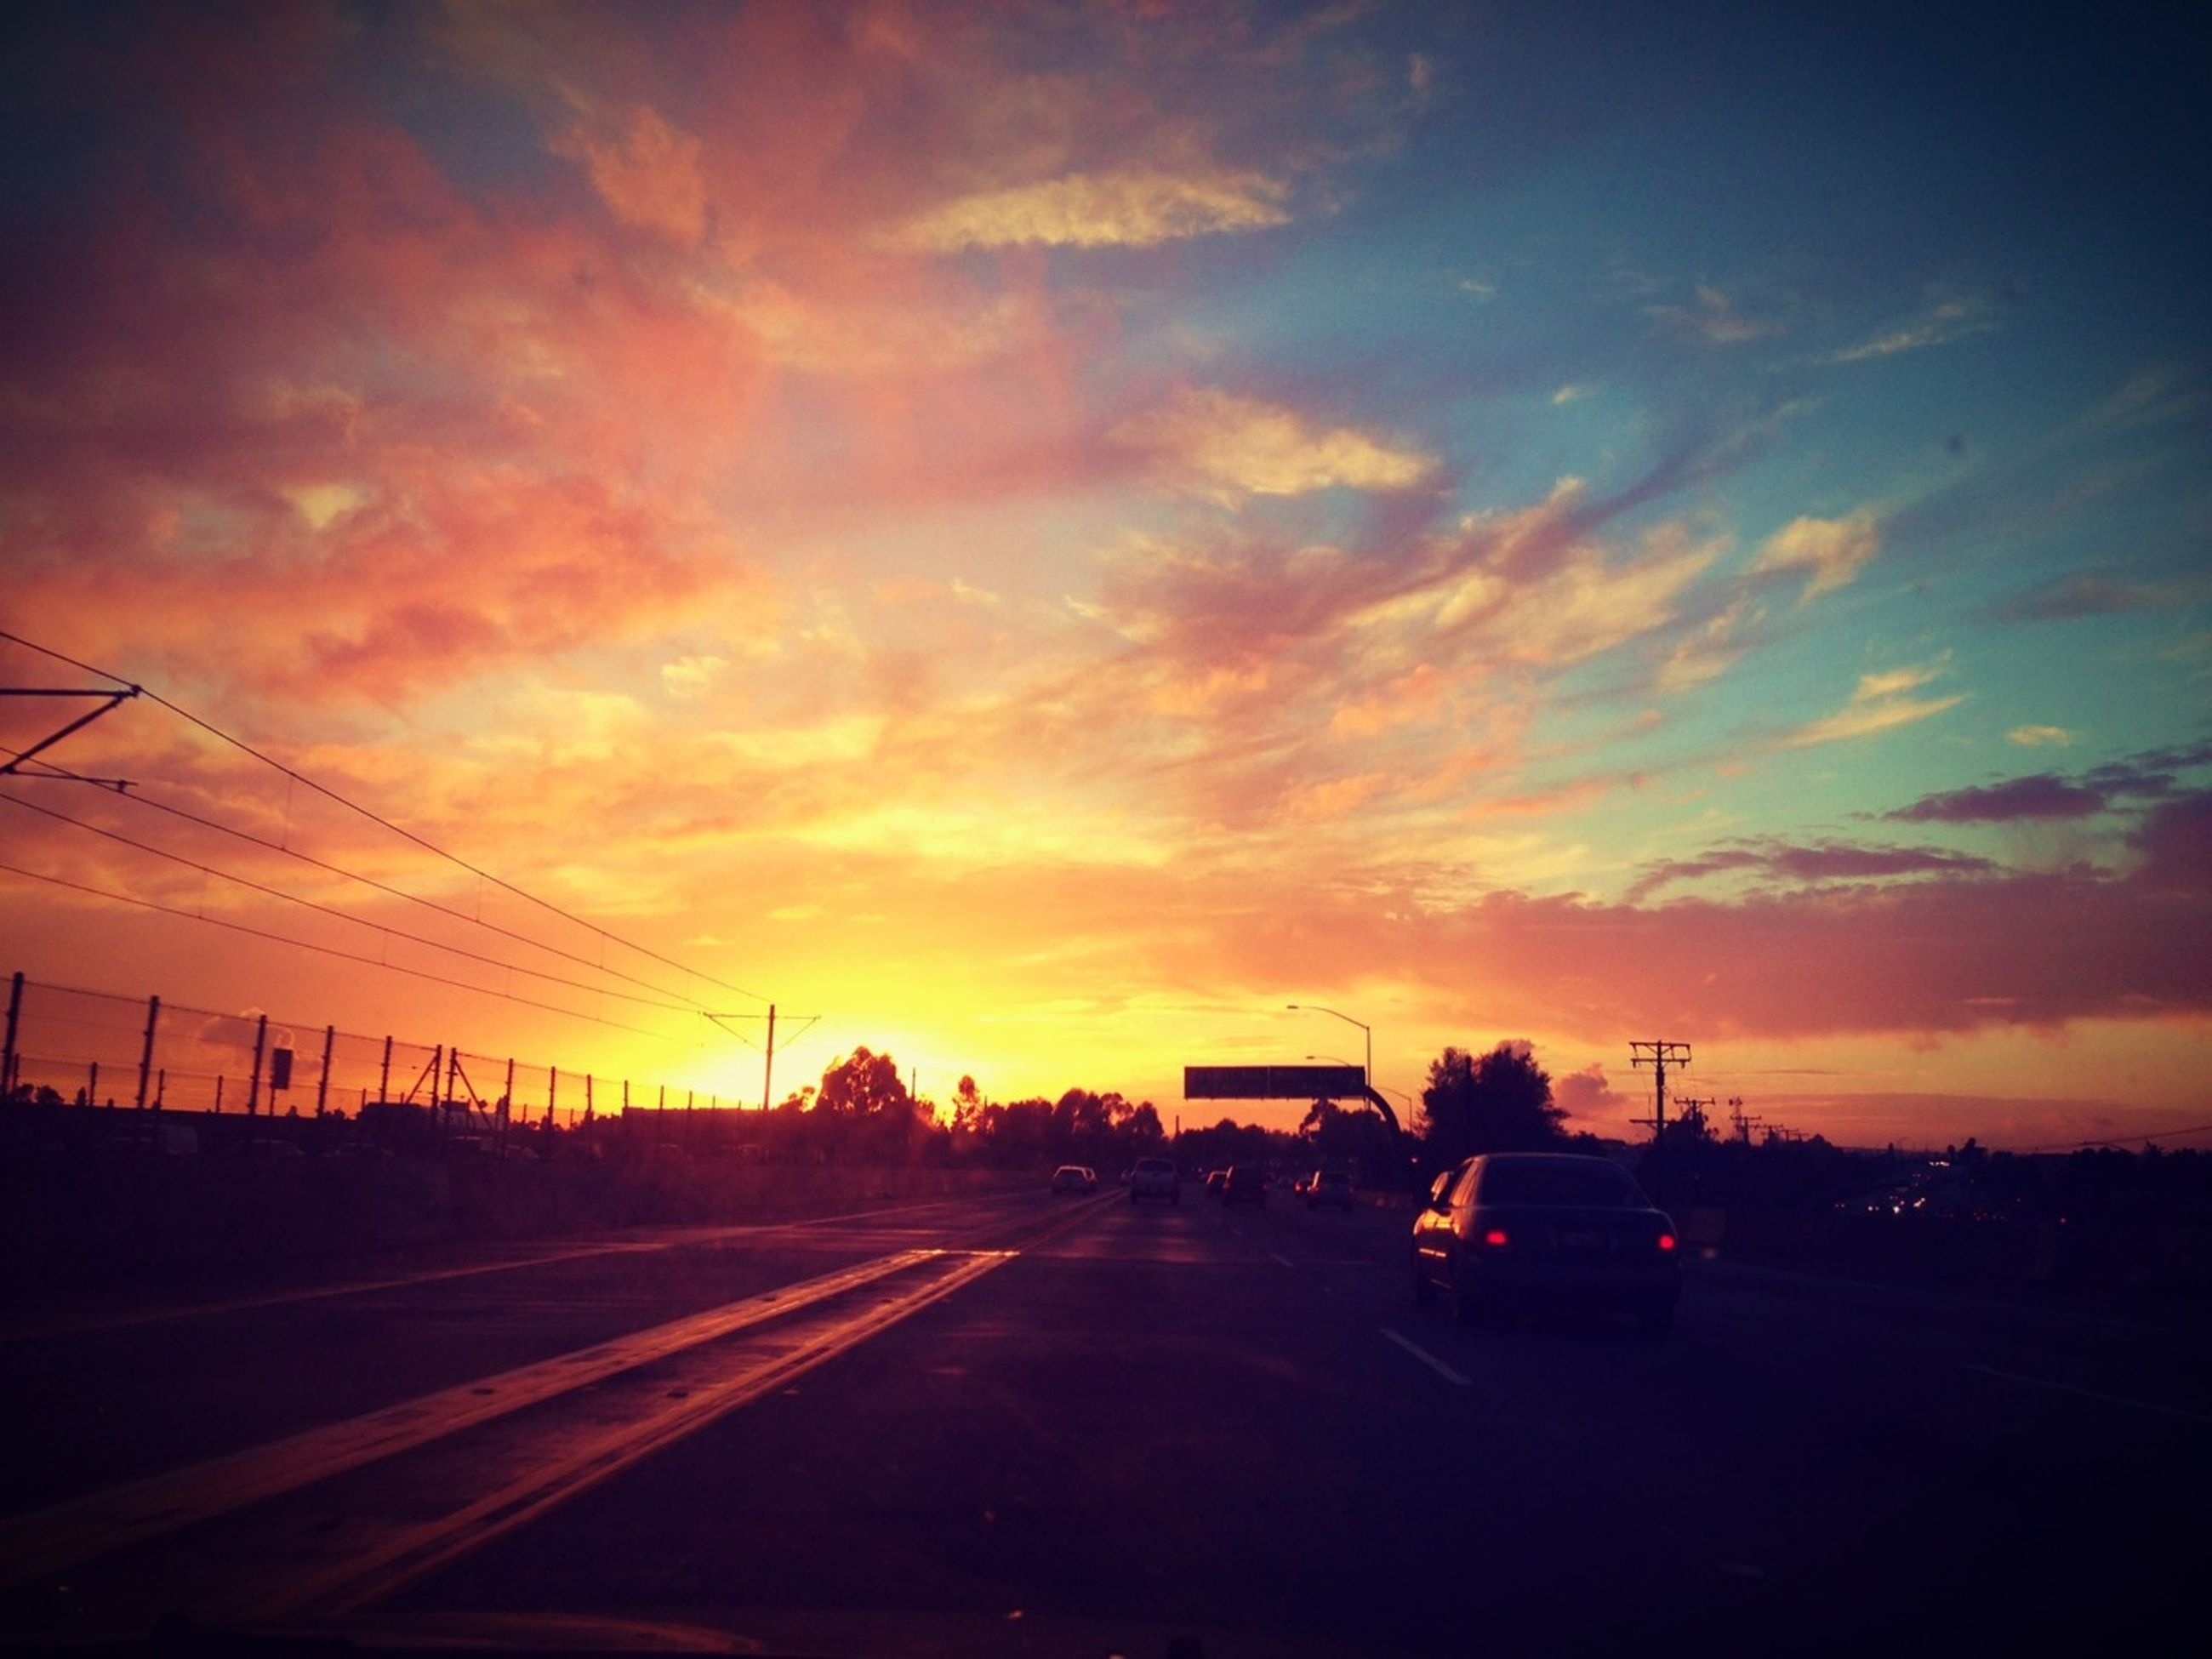 sunset, transportation, orange color, sky, sun, land vehicle, car, road, silhouette, mode of transport, cloud - sky, scenics, dramatic sky, landscape, beauty in nature, nature, the way forward, tranquil scene, sunlight, tranquility